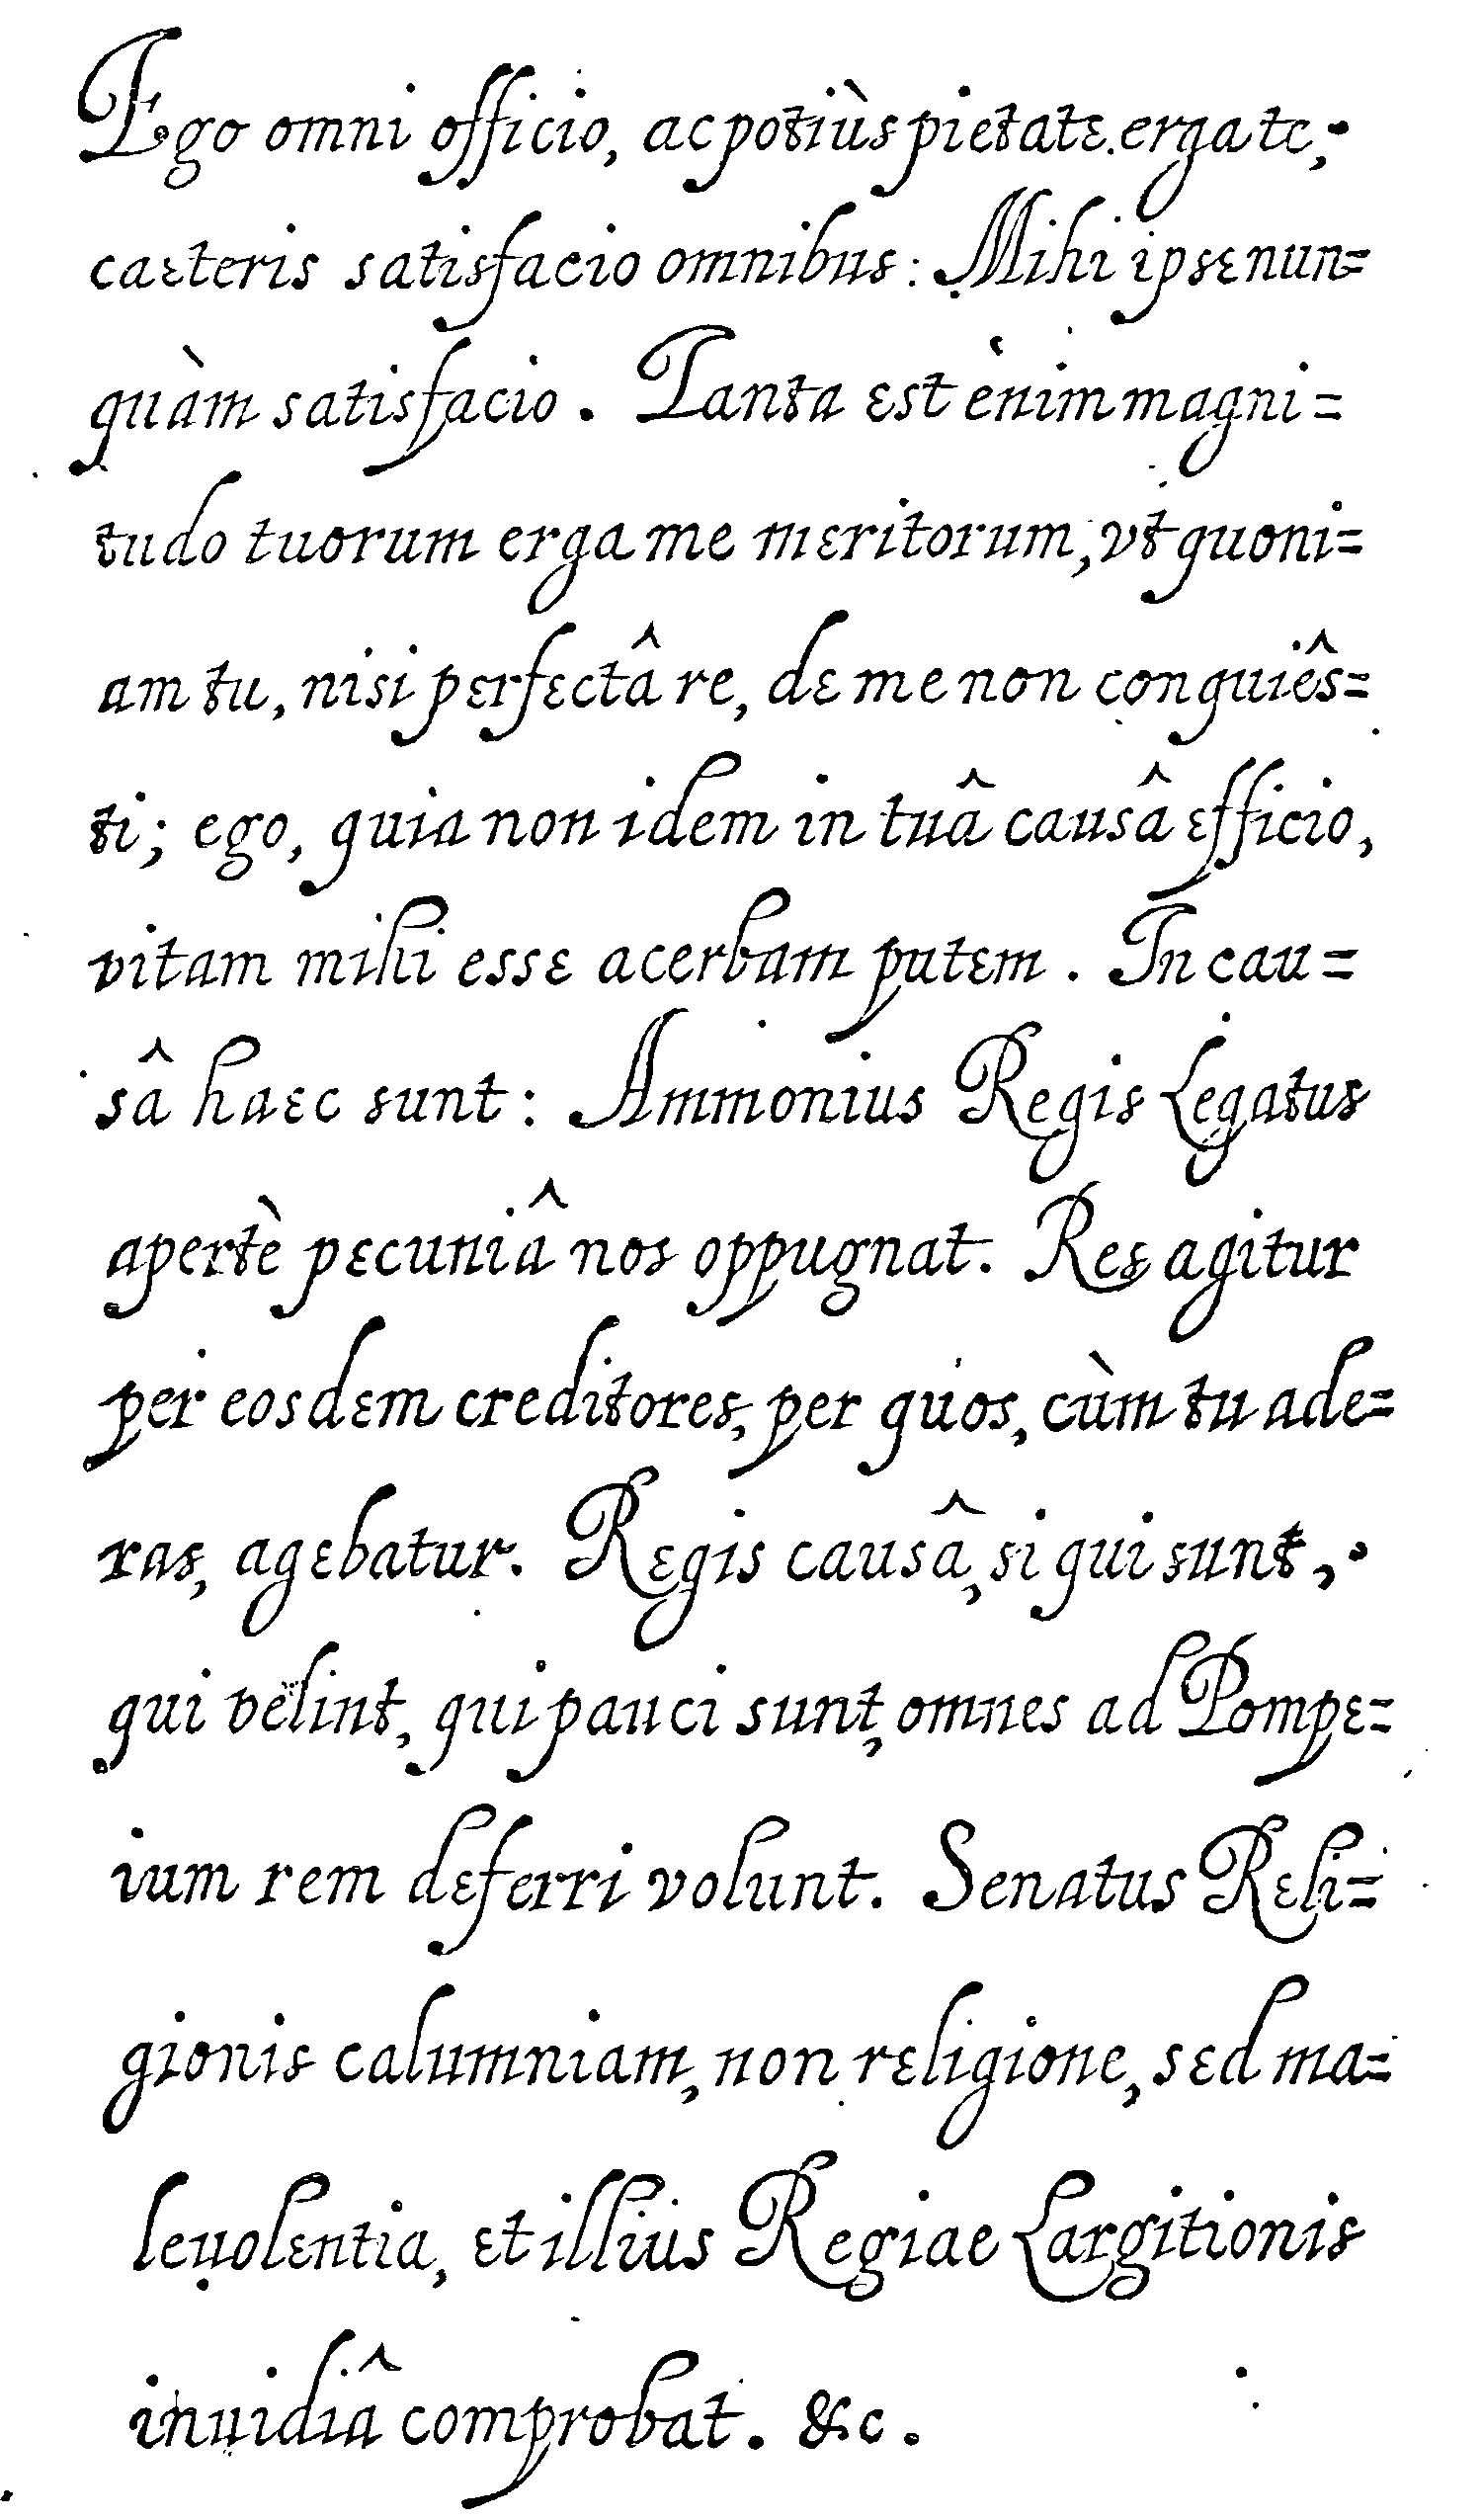 Filebacon Cicero Letterpng  Wikimedia Commons Filebacon Cicero Letterpng